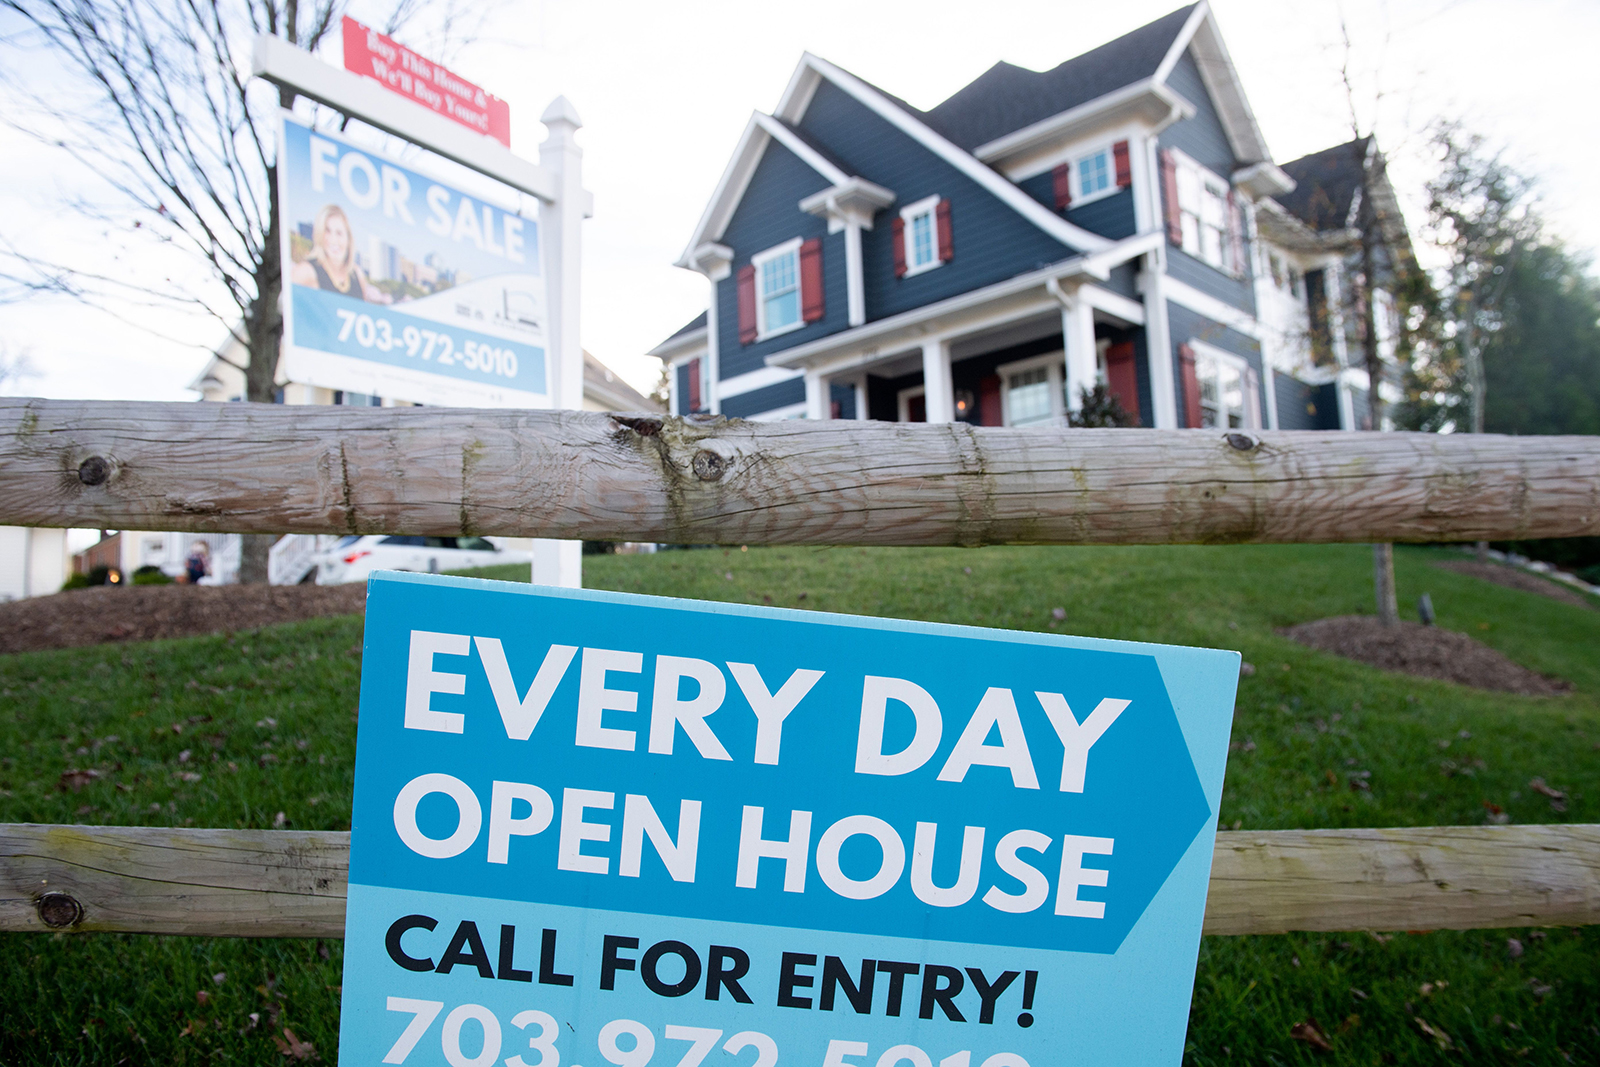 Two big reasons investors are worried about the housing market